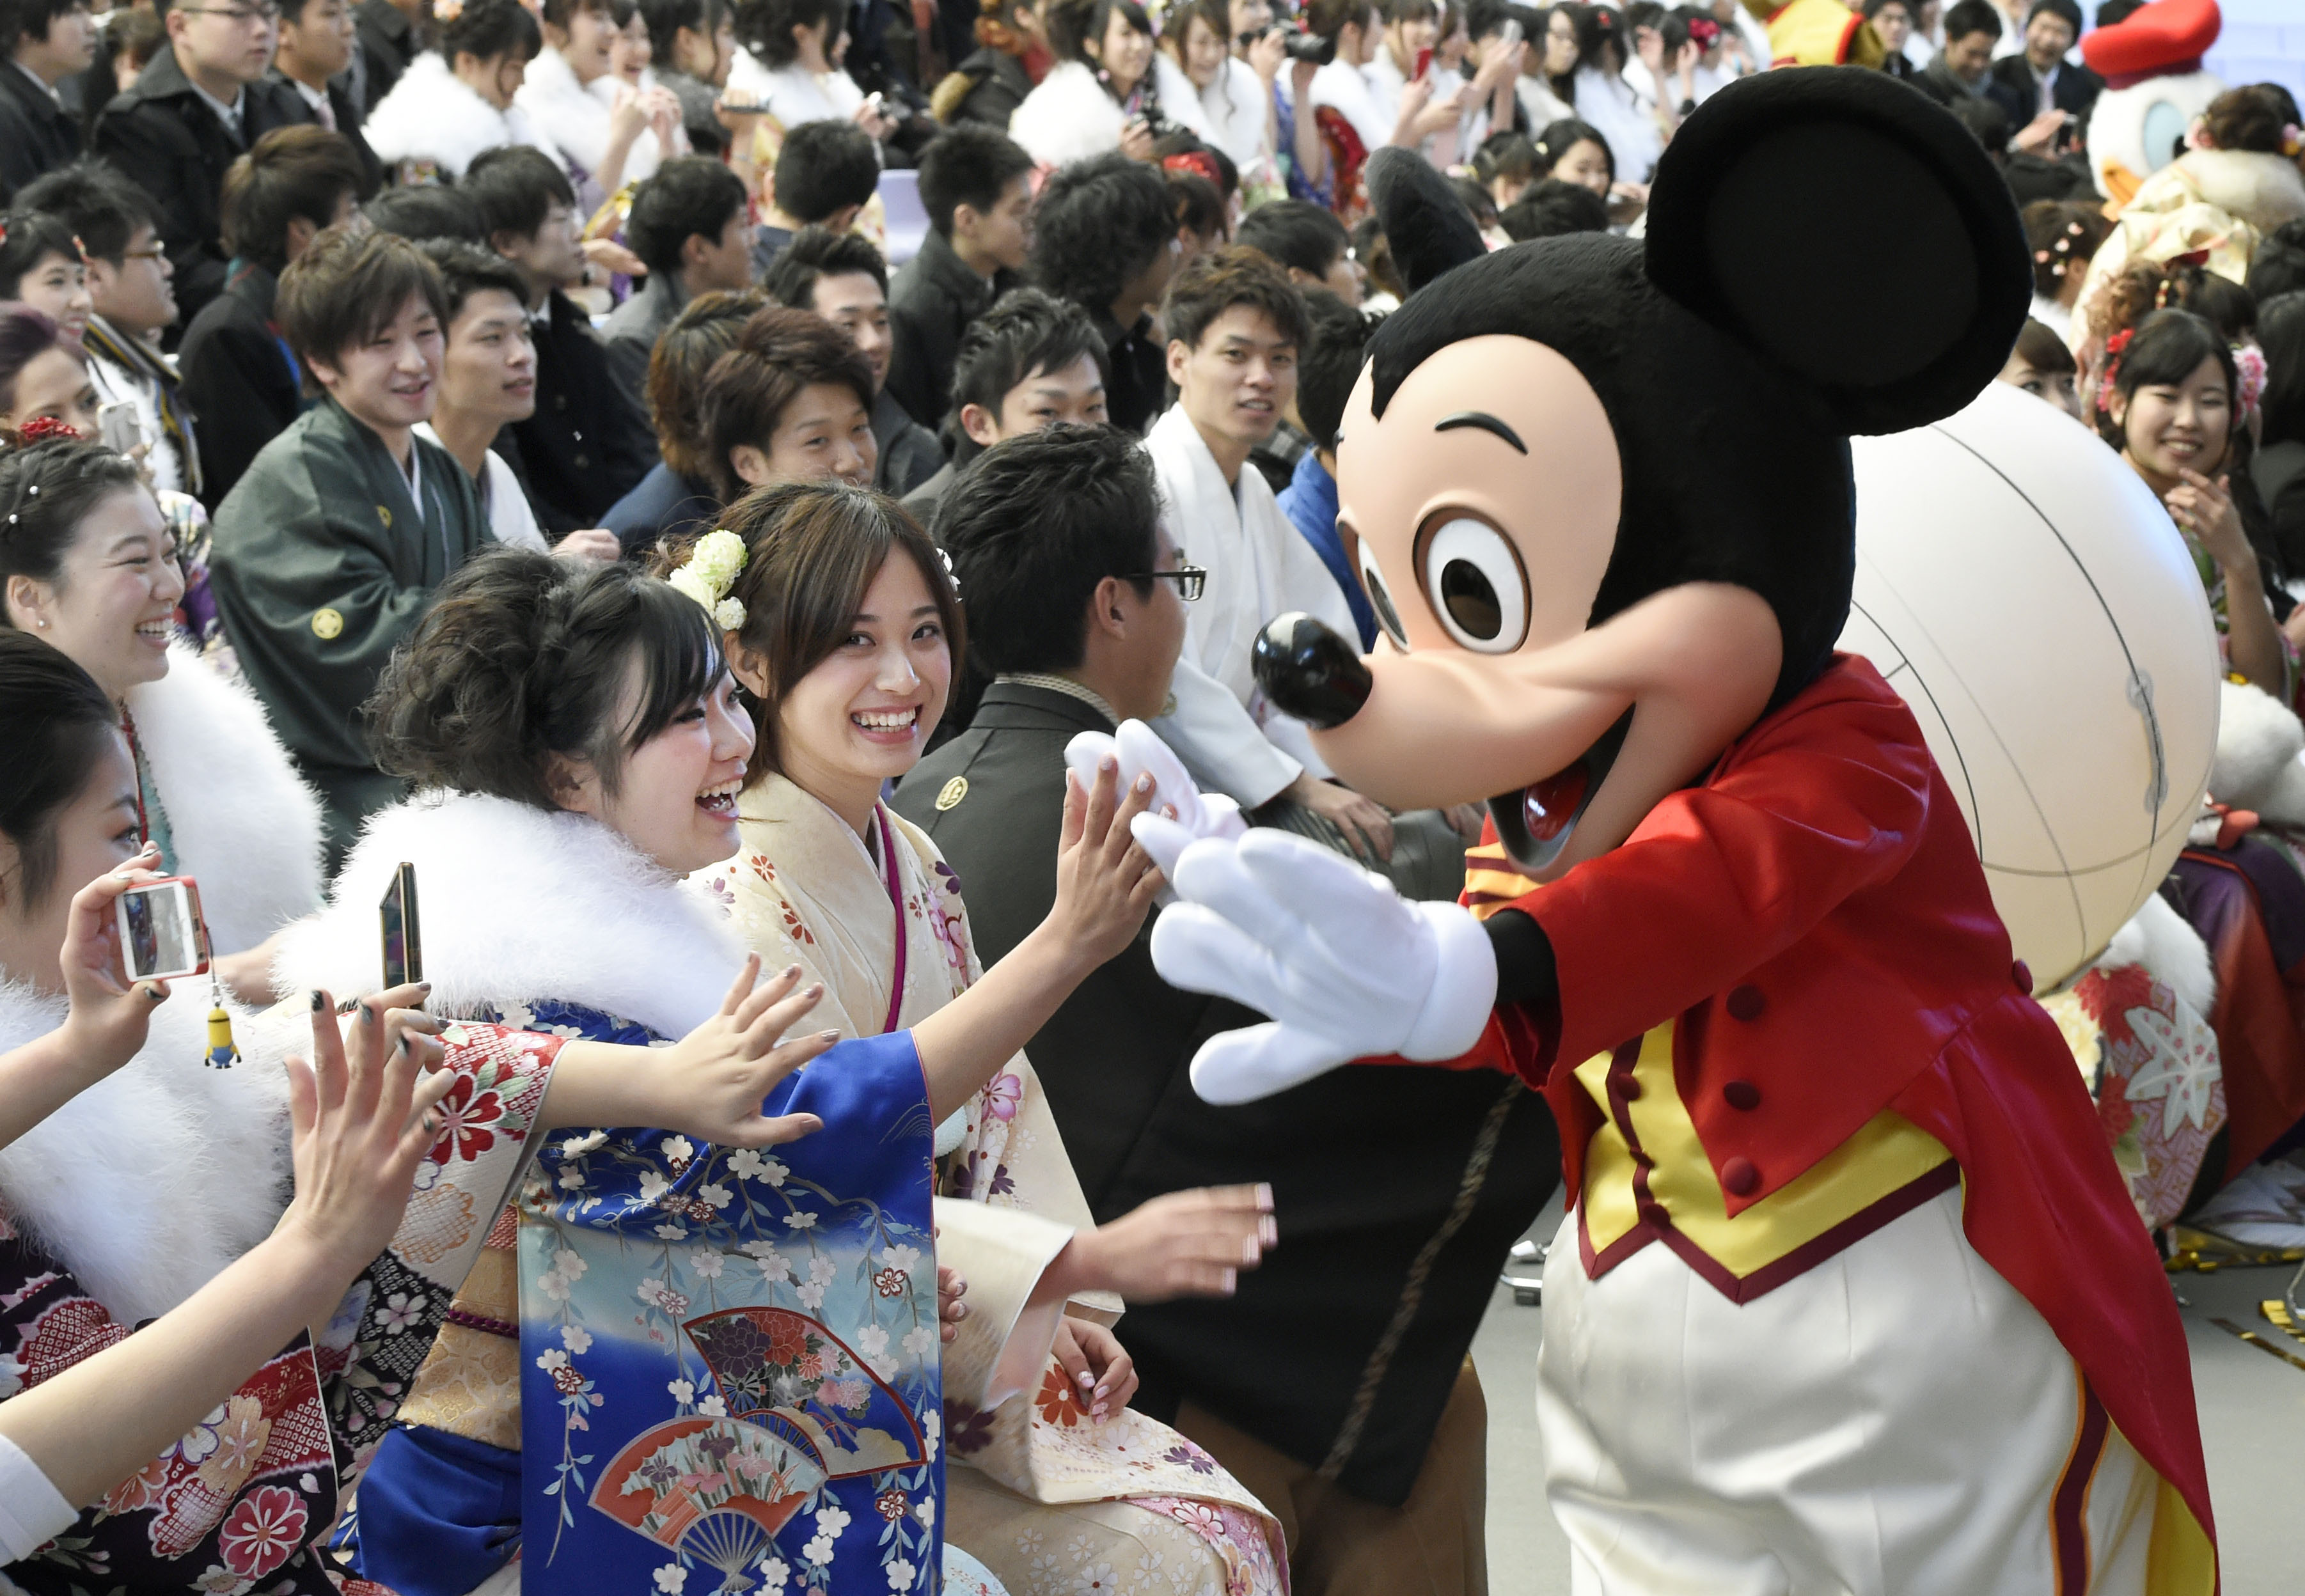 Mickey Mouse congratulates those who attended a coming-of-age ceremony at Tokyo Disneyland in Urayasu, near Tokyo, Japan, on Jan. 12, 2015